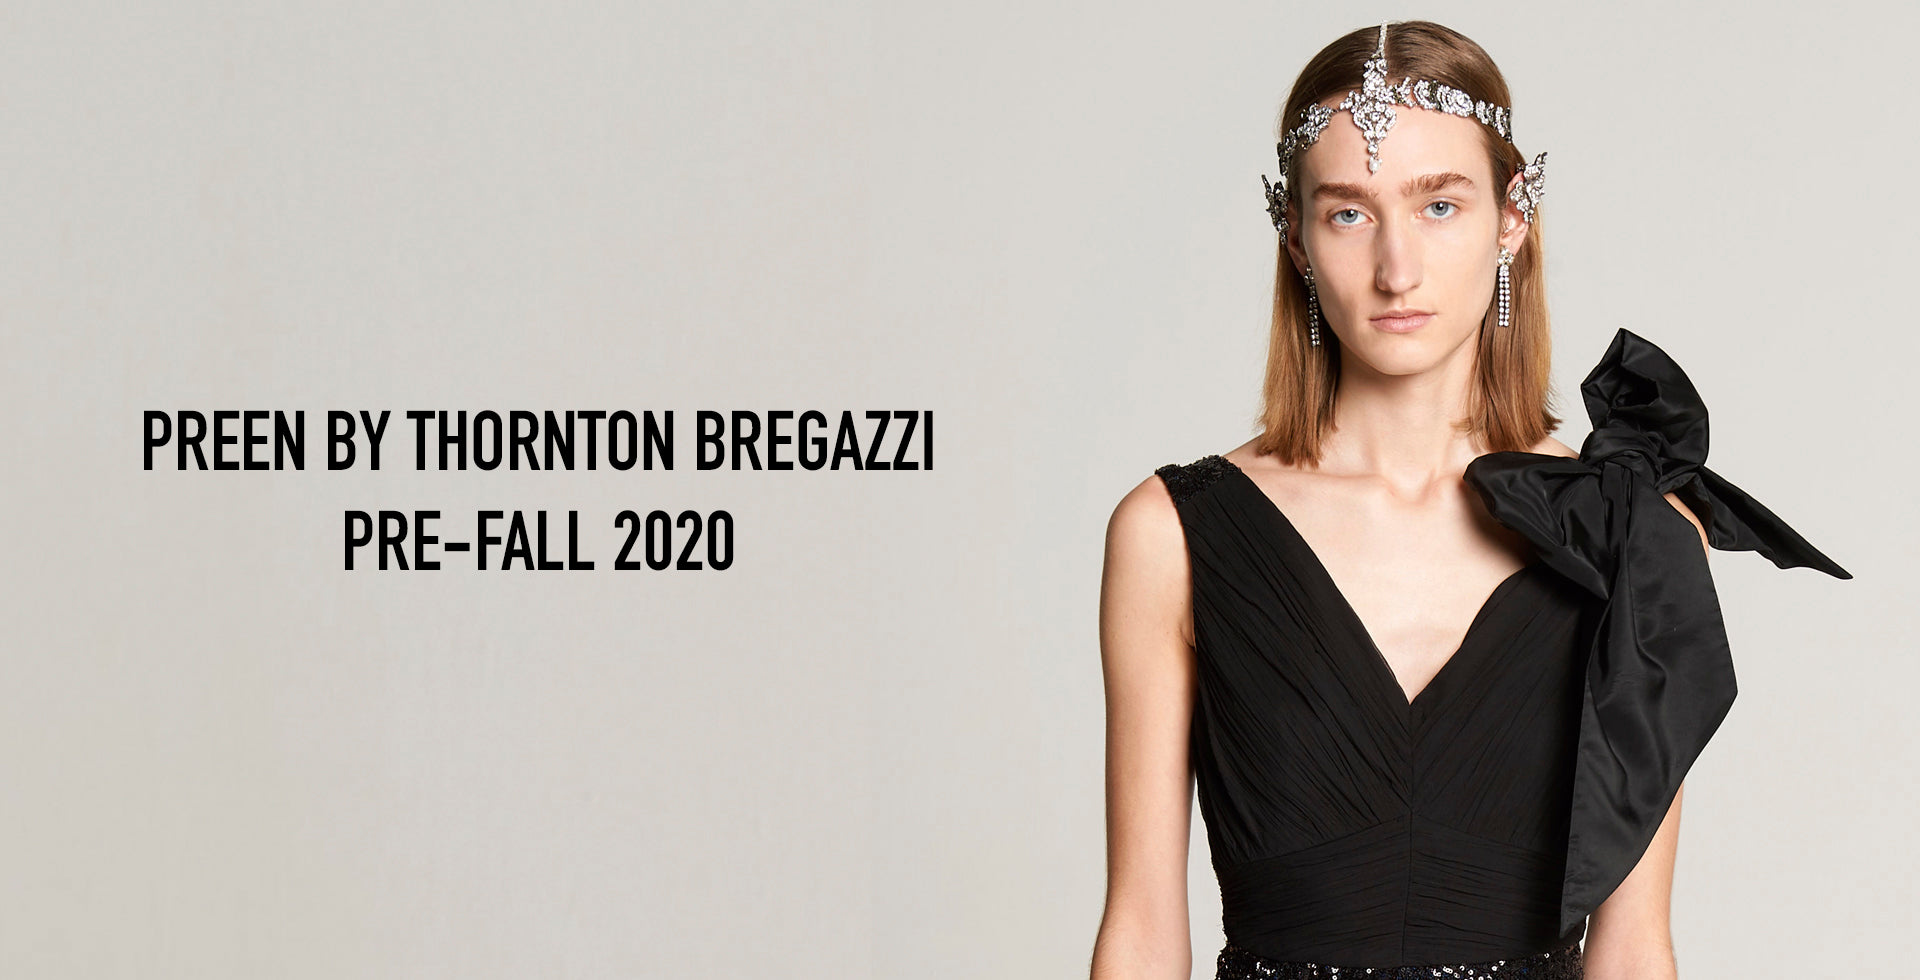 PREEN BY THORNTON BREGAZZI PRE-FALL 2020 COLLECTION